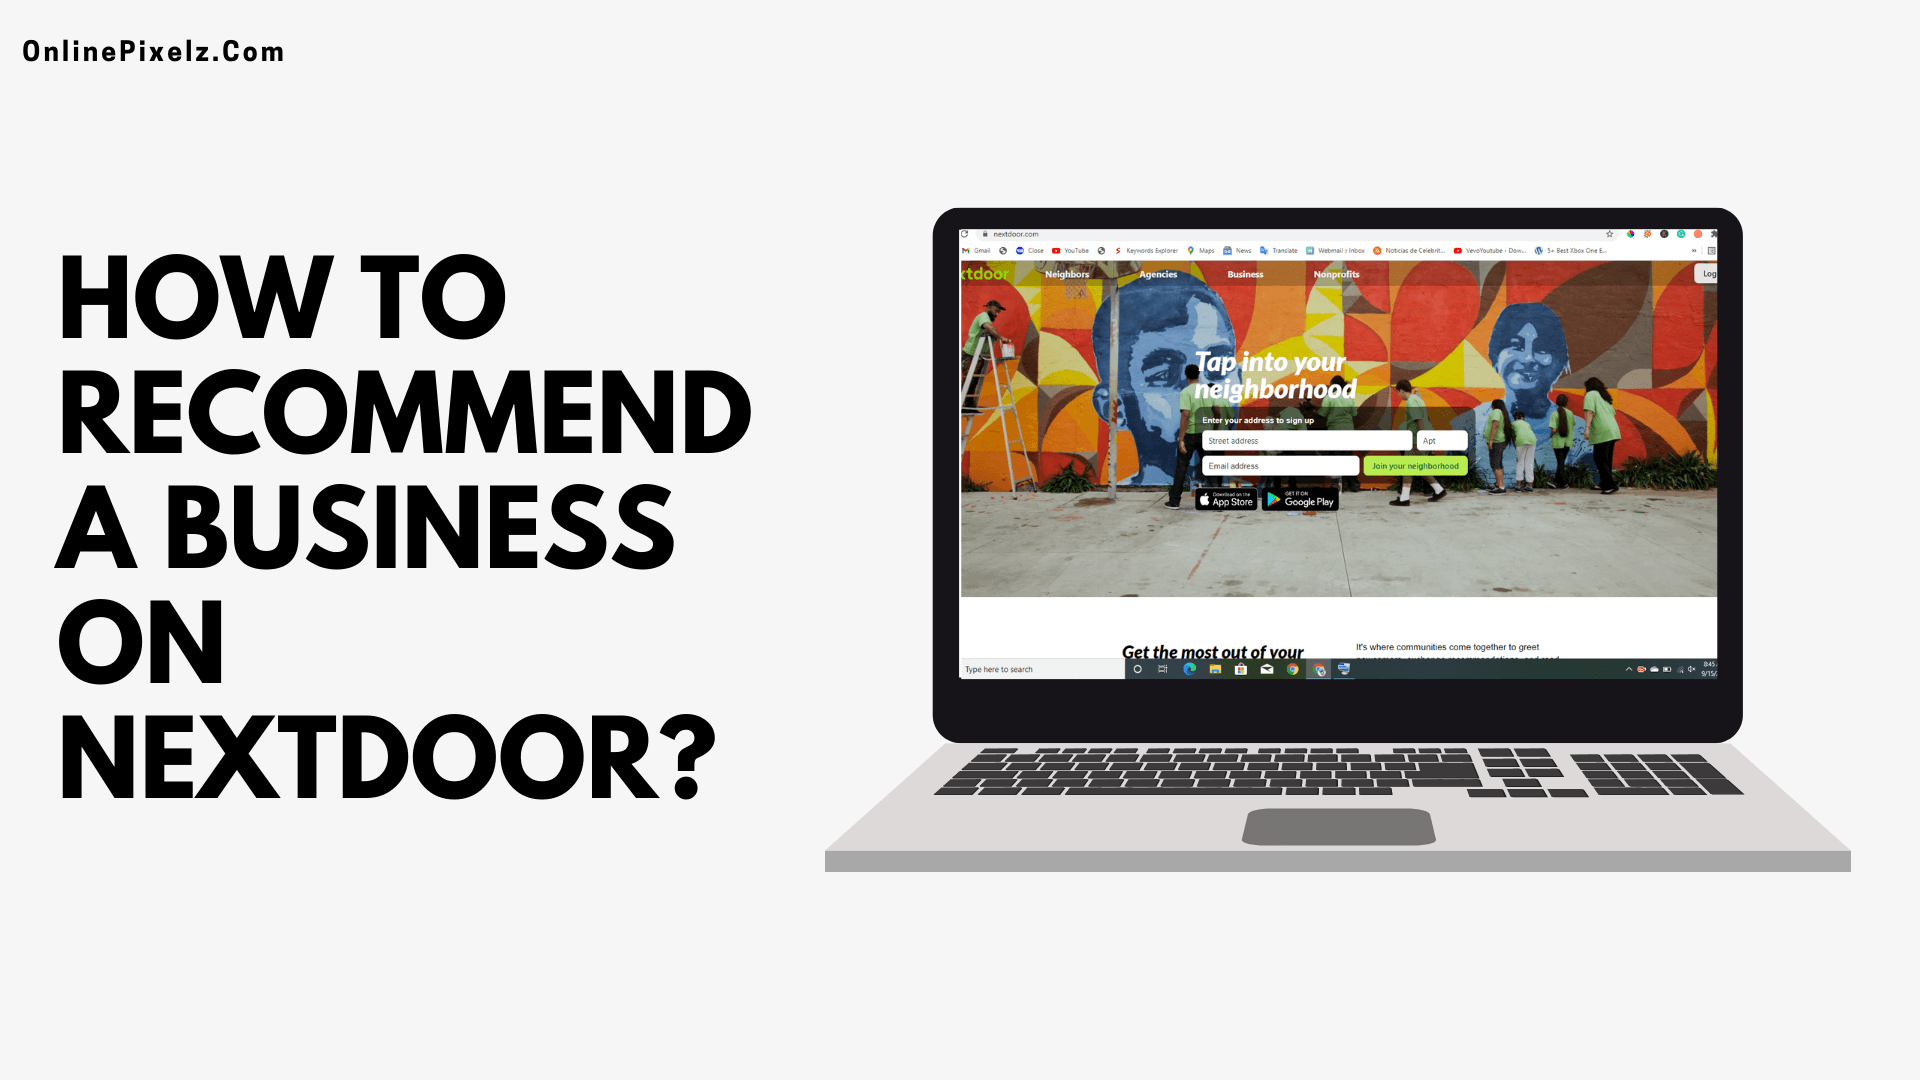 How to Recommend a Business on Nextdoor